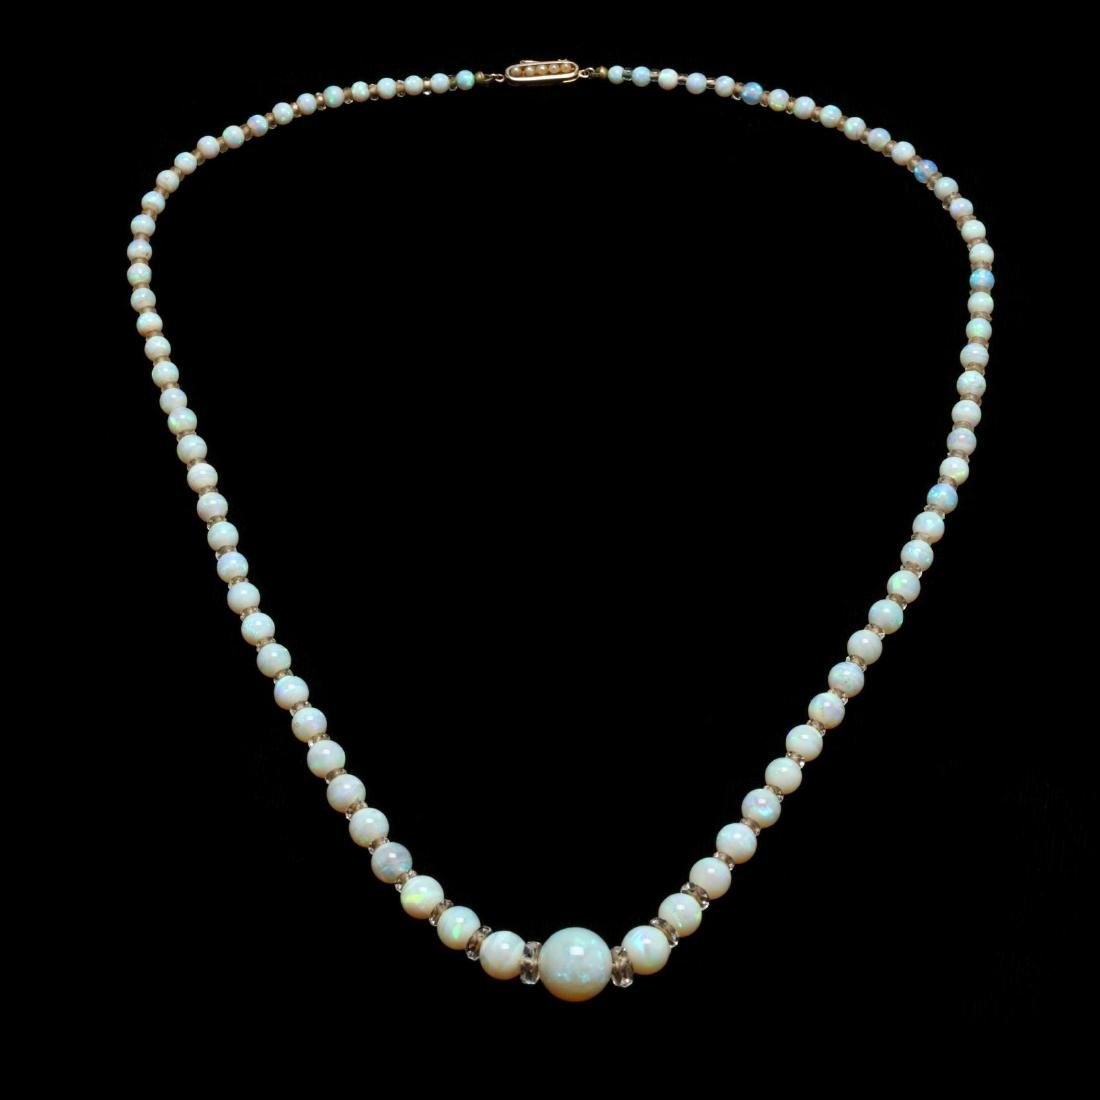 a13560a83 Vintage Opal and Rock Crystal Bead Necklace - Mar 02, 2019 | Leland Little  Auctions in NC